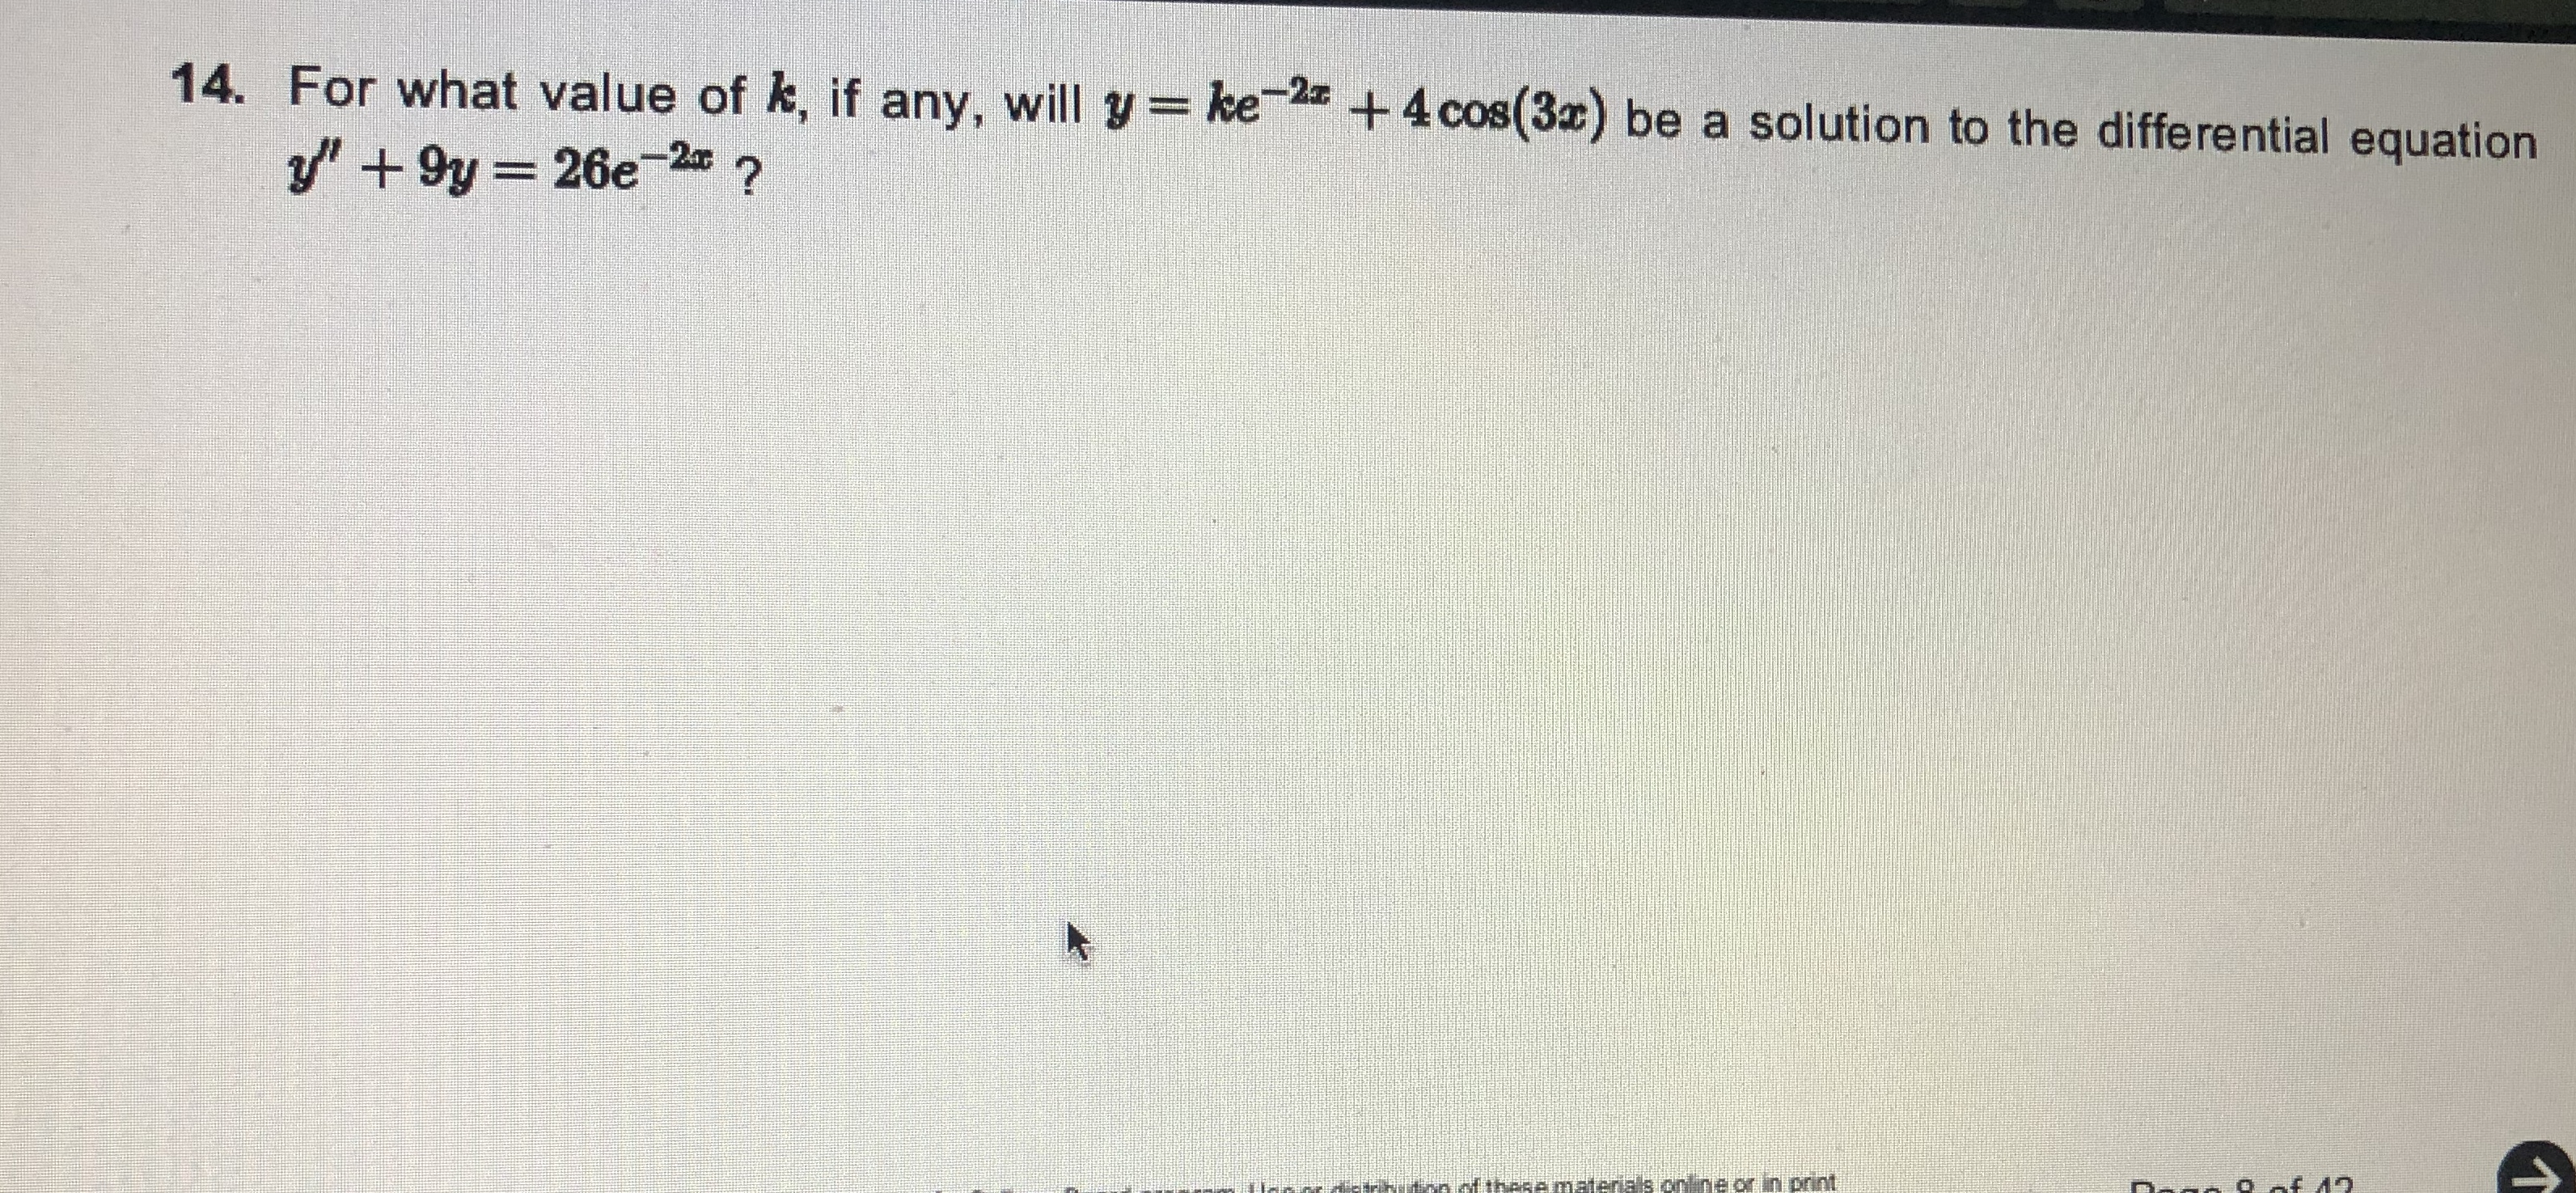 "14. For what value of k, if any, will y= ke +4 cos(3x) be a solution to the differential equation y"" + 9y = 26e-2 ? of these materials online or in print"